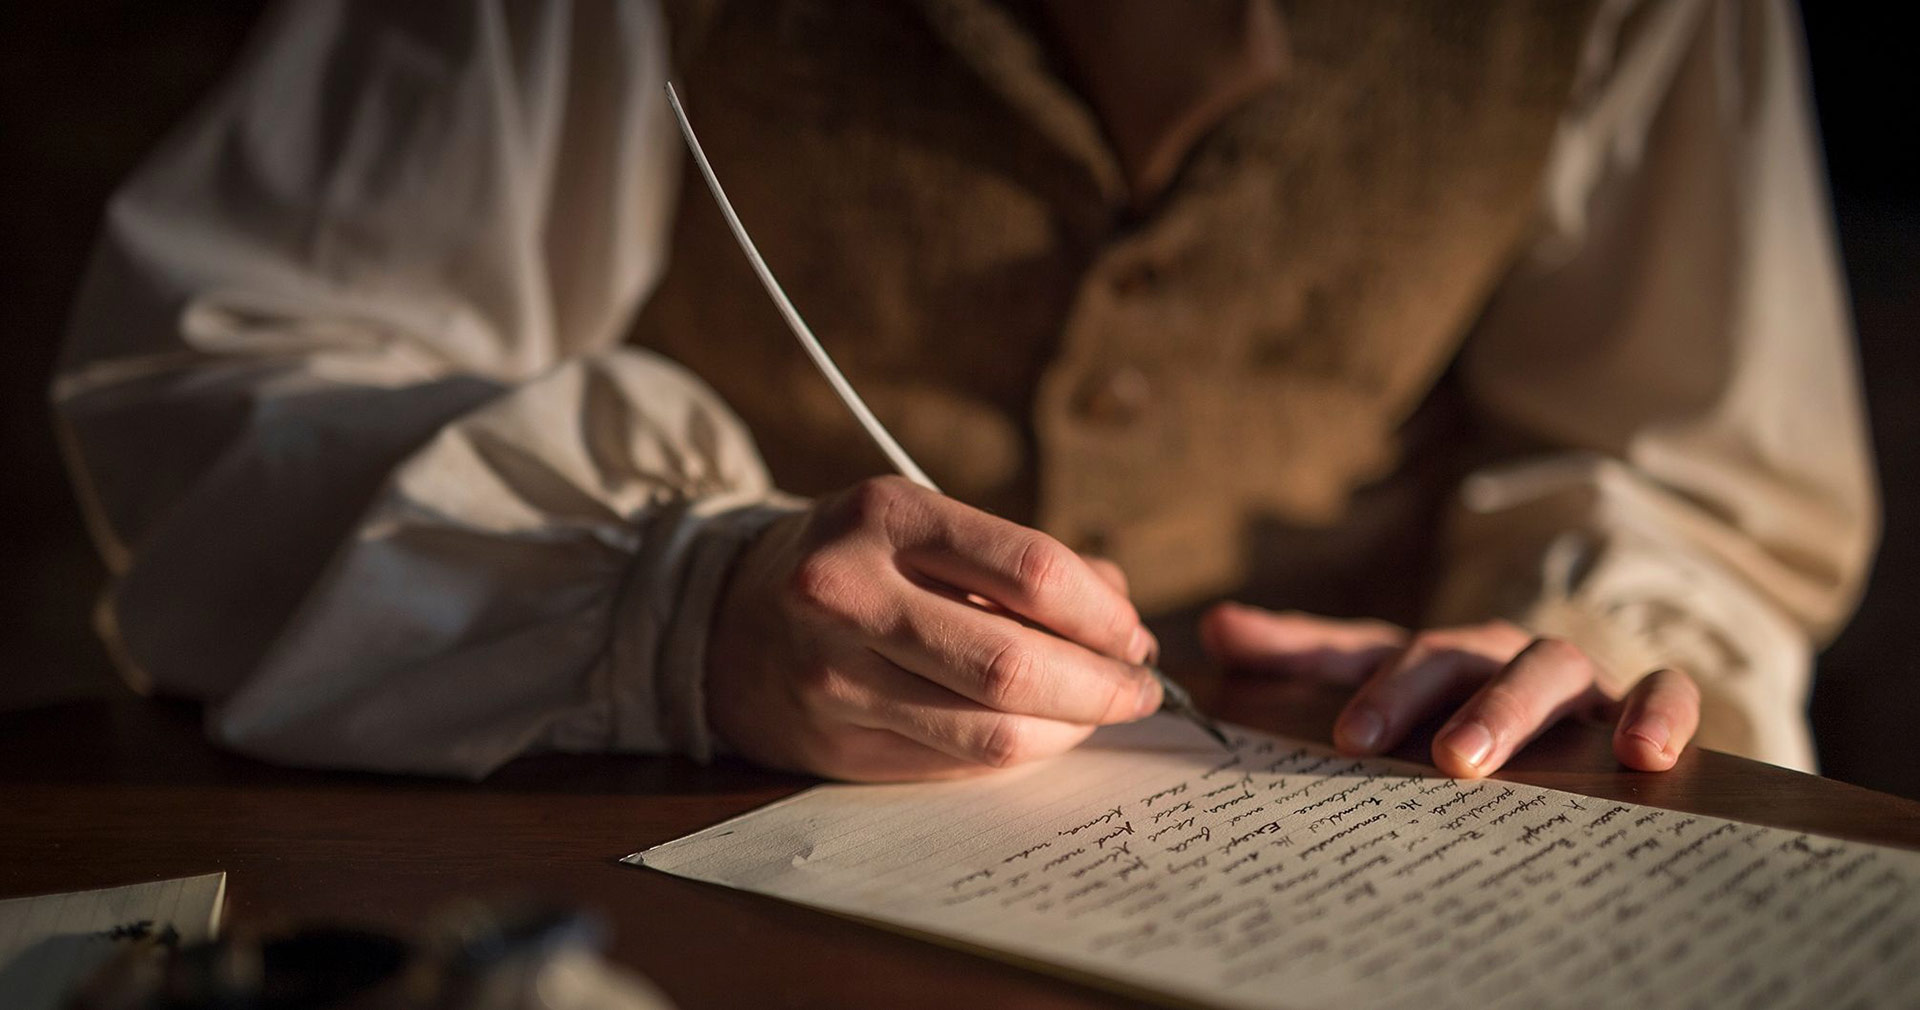 Oliver Cowdery scribing the text of the Book of Mormon. Image via Church of Jesus Christ.